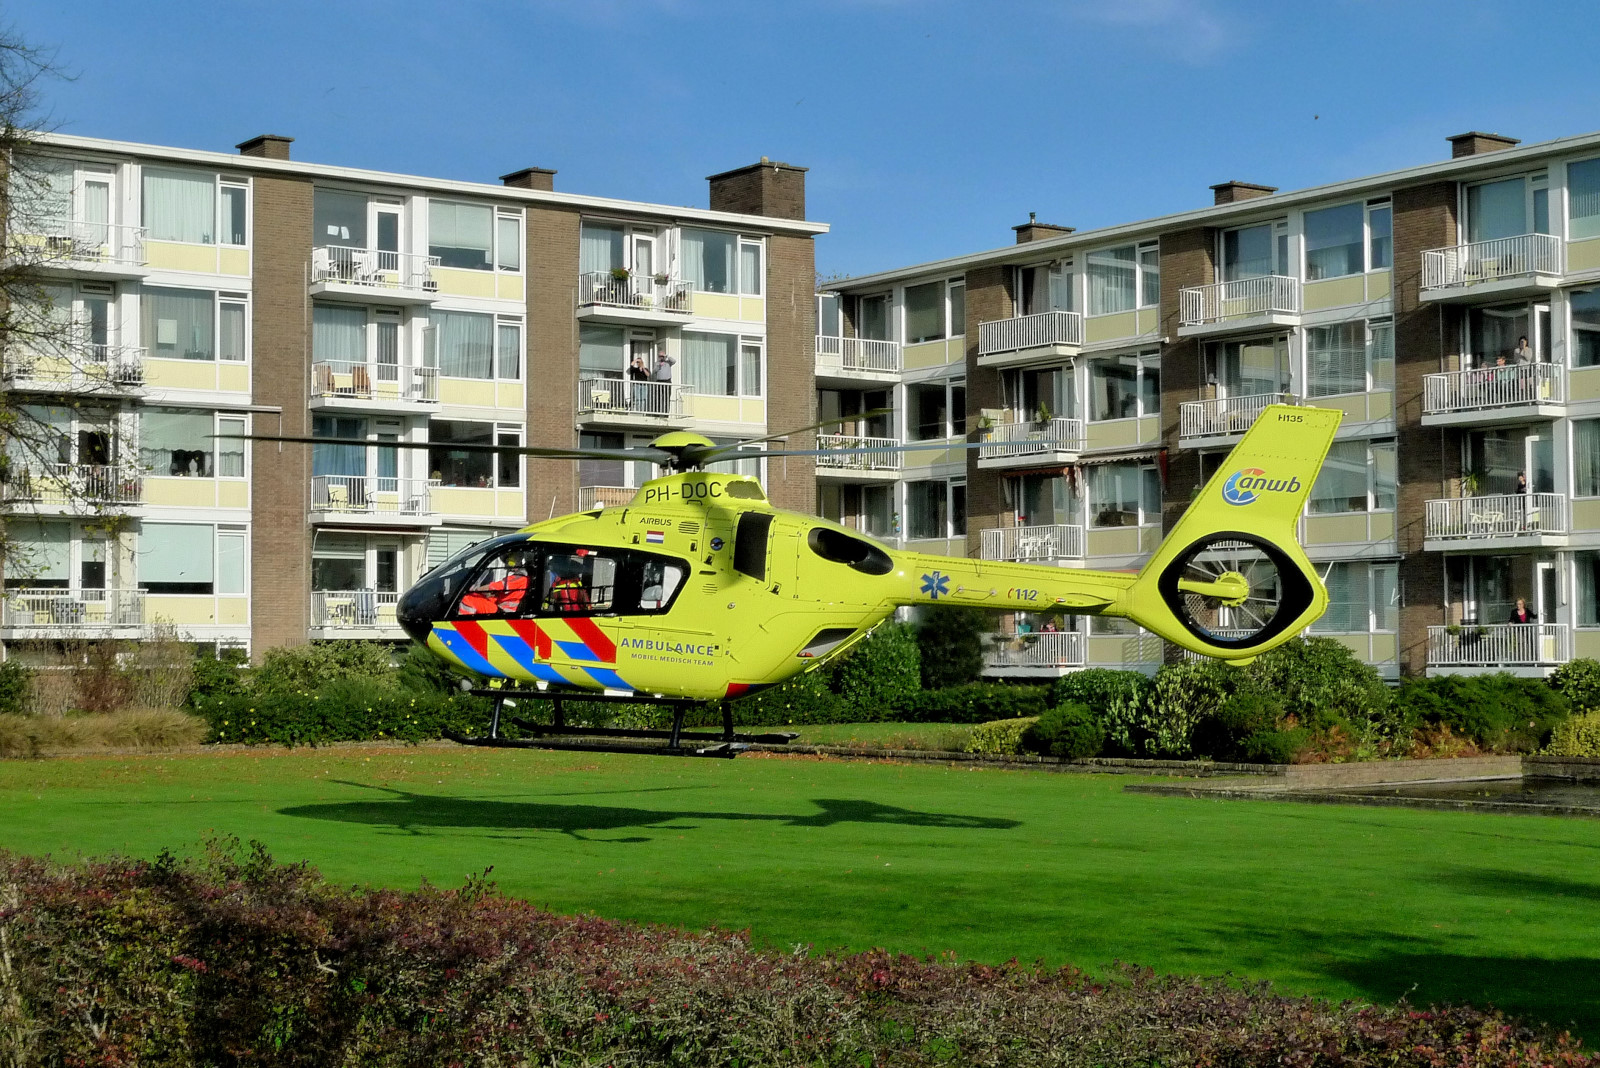 2020 11 07 03 Traumahelikopter